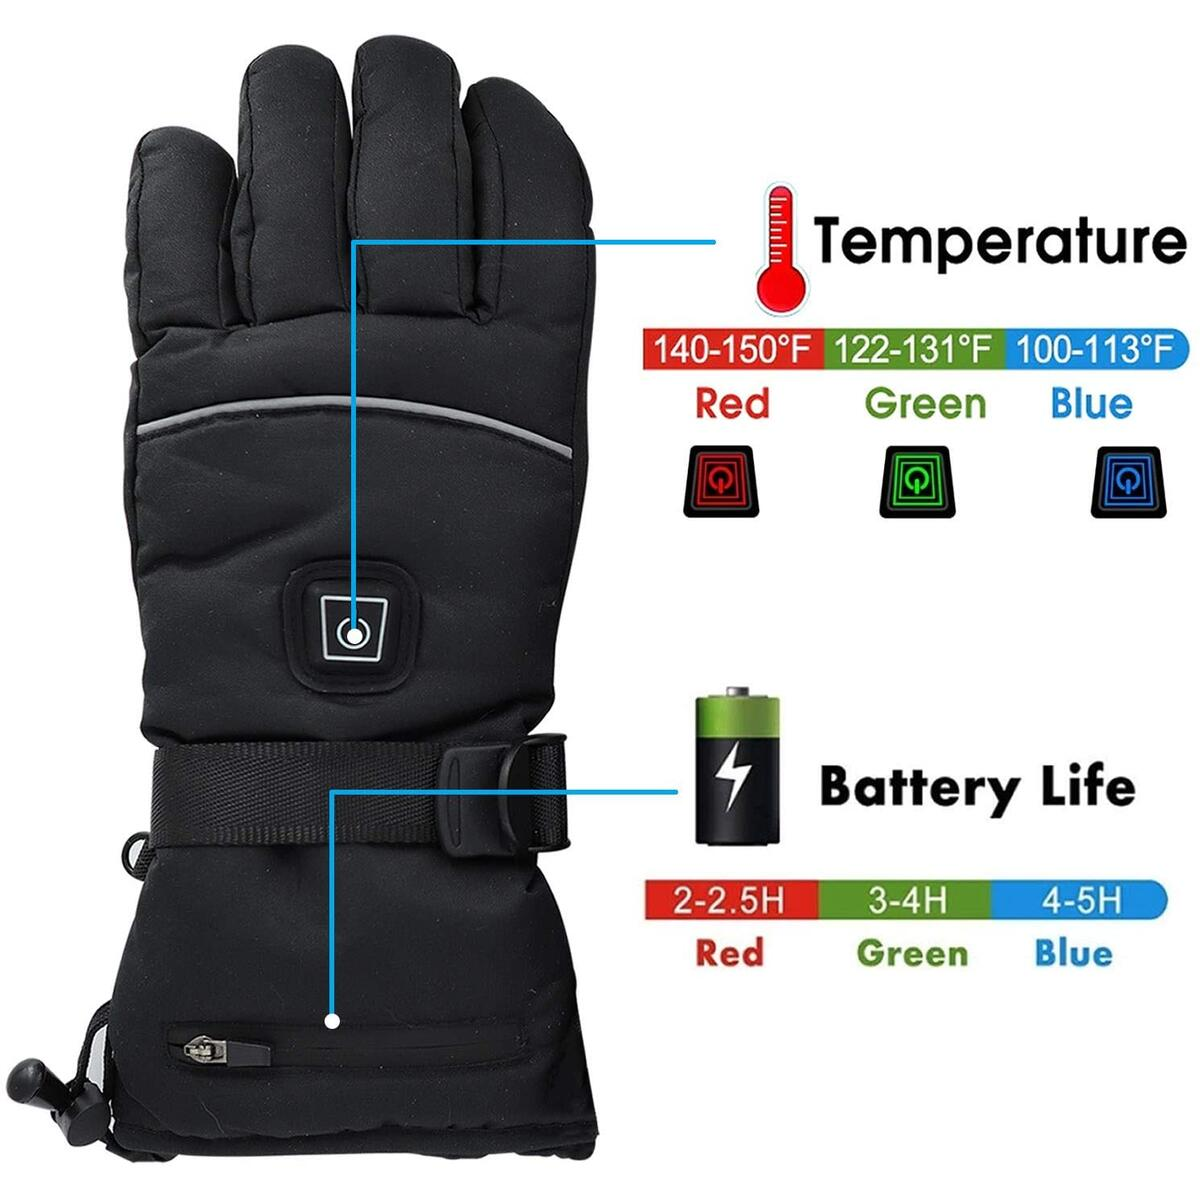 Cozy Gear Rechargeable Battery Heated Gloves (Large & Small)